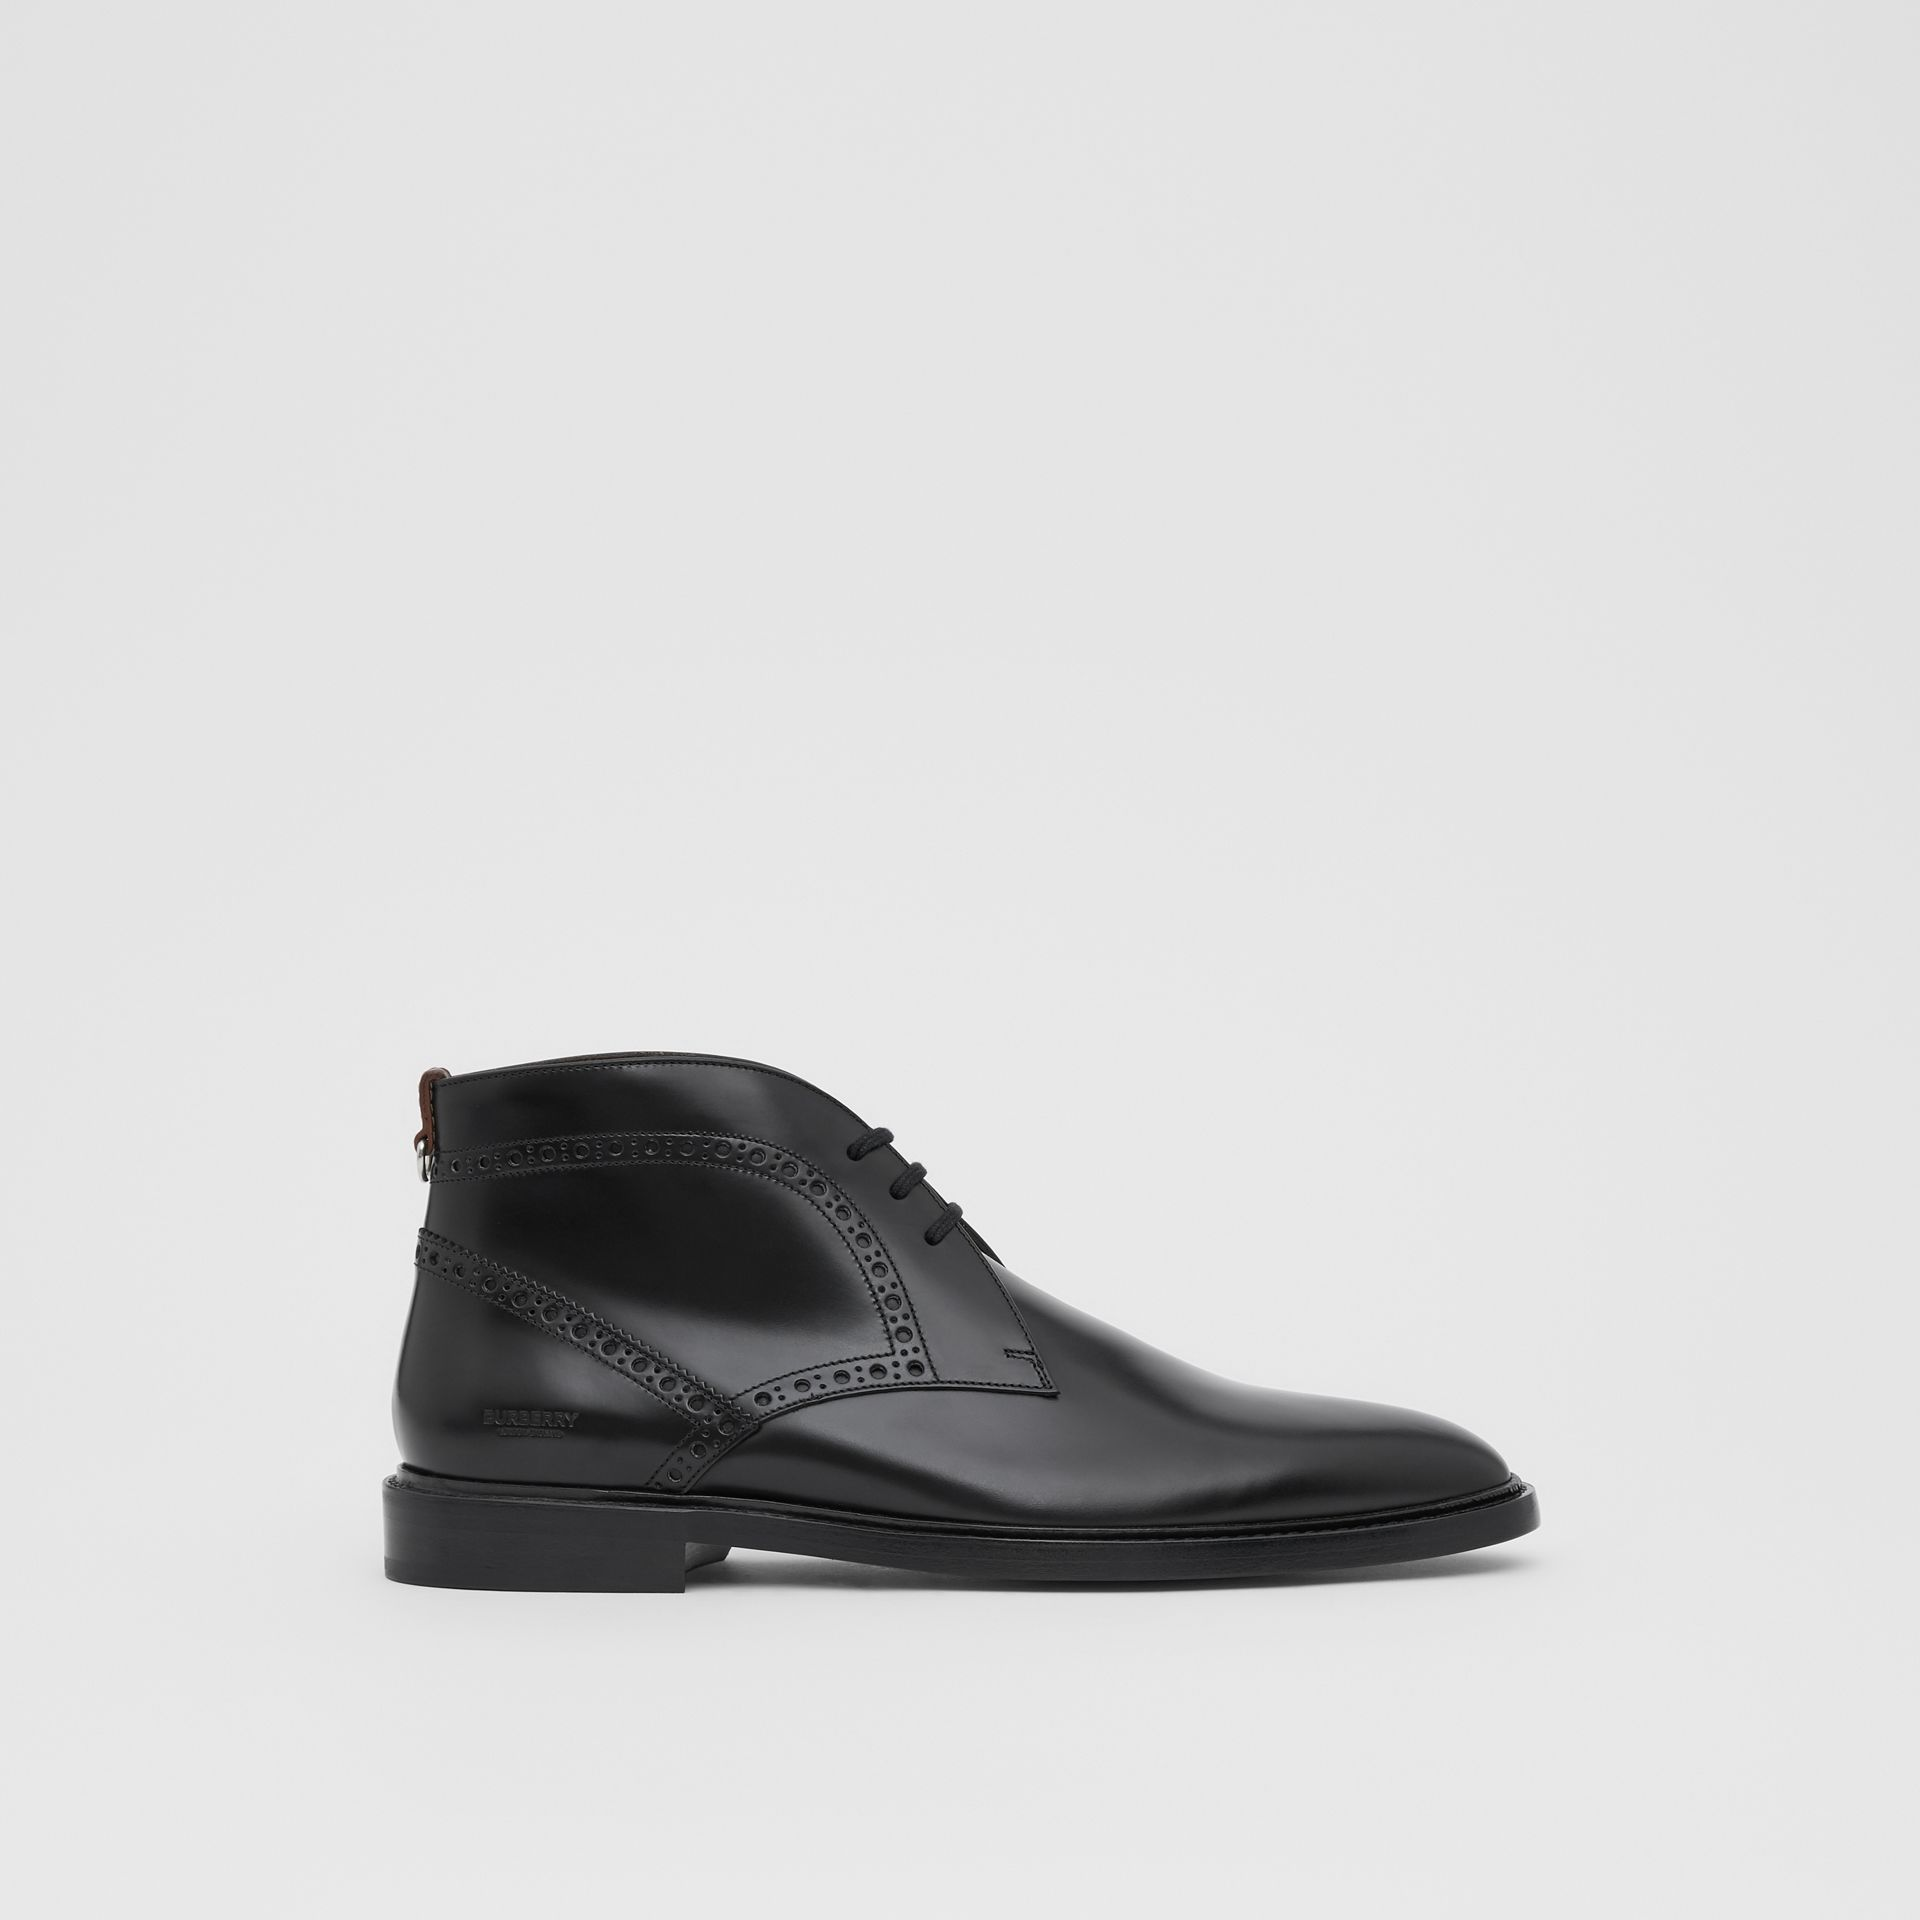 Brogue Detail Leather Boots in Black - Men | Burberry - gallery image 4